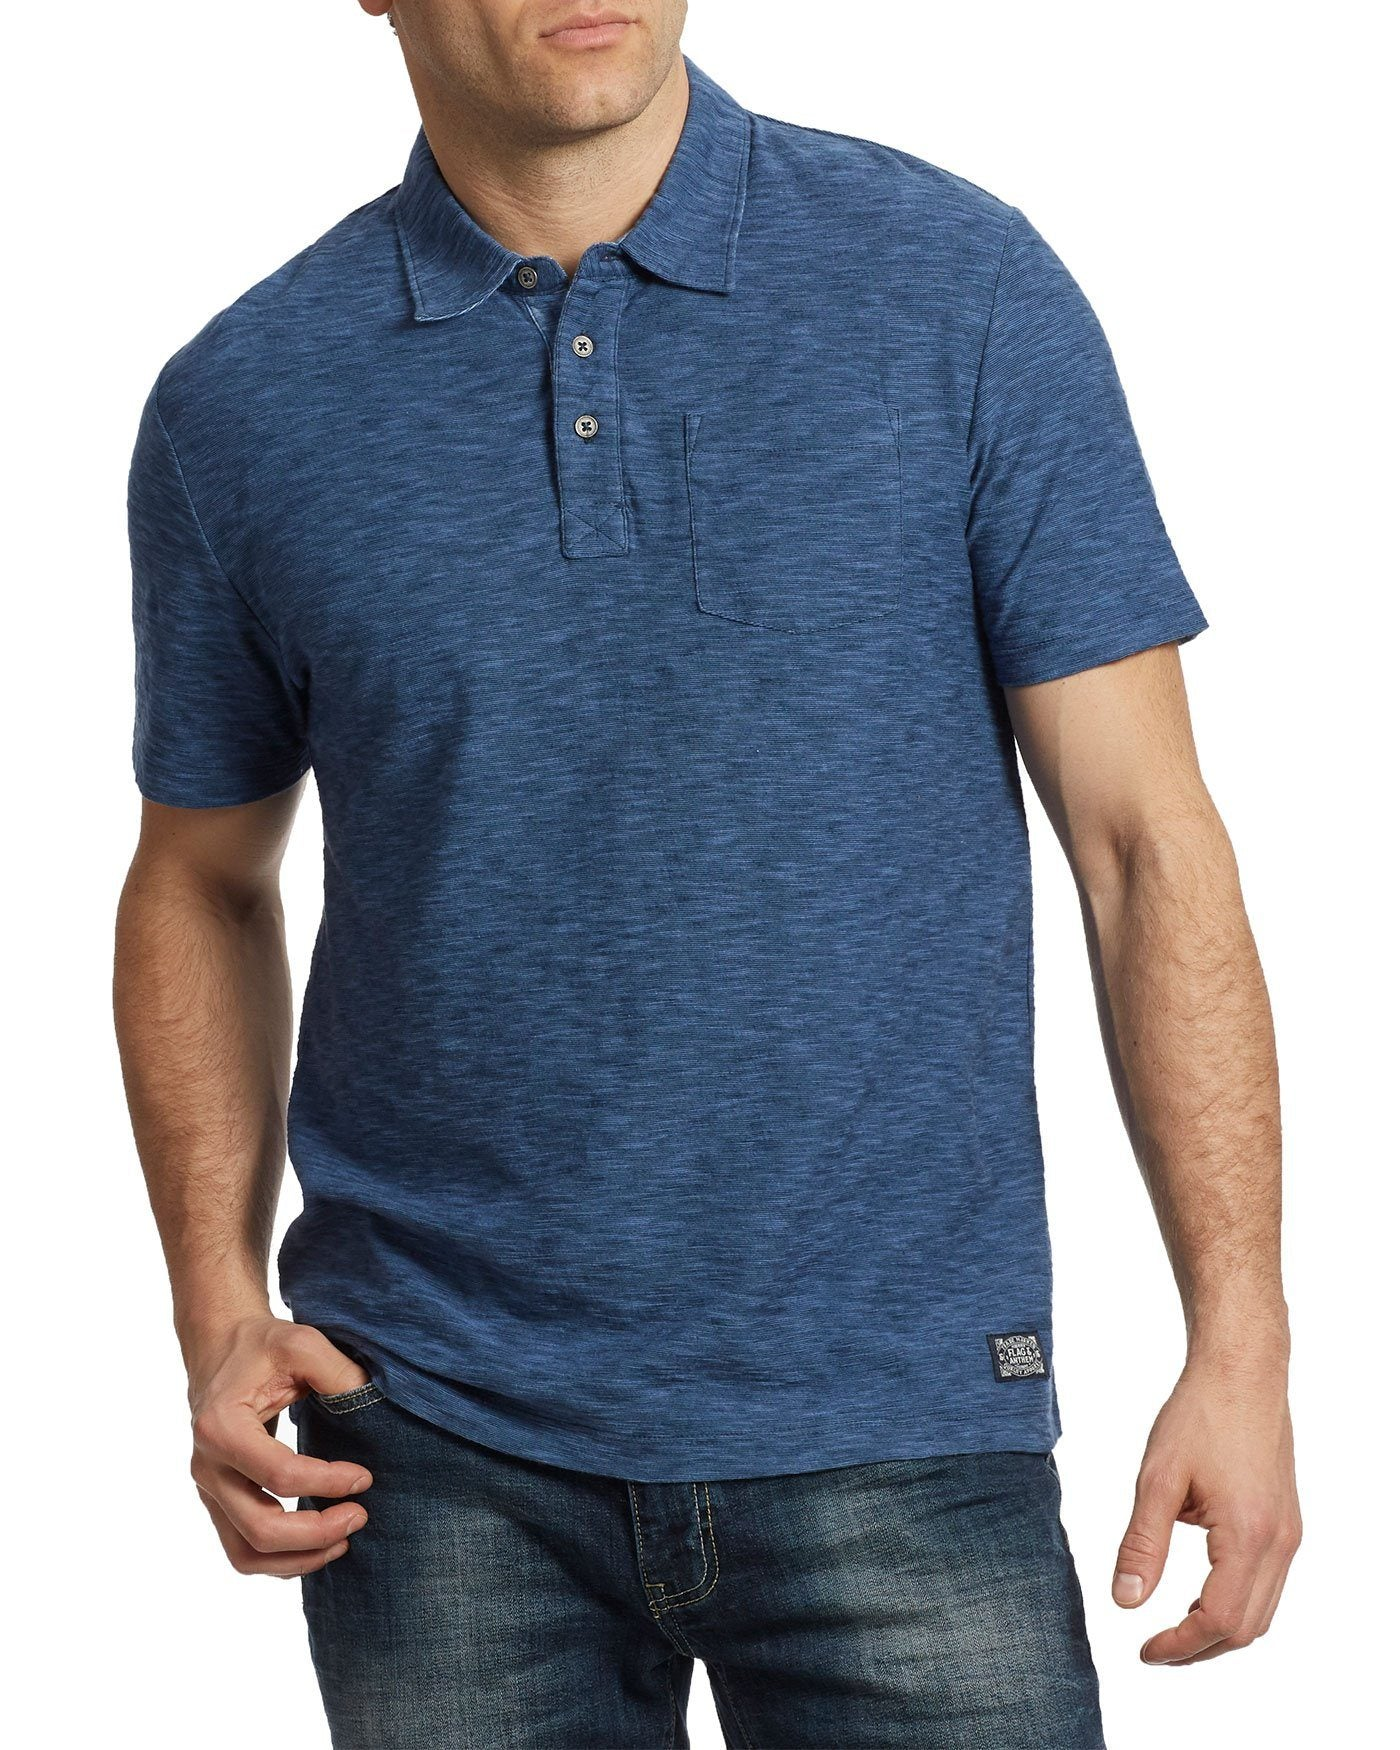 GREENSBURG POLO - NAVY BLUE